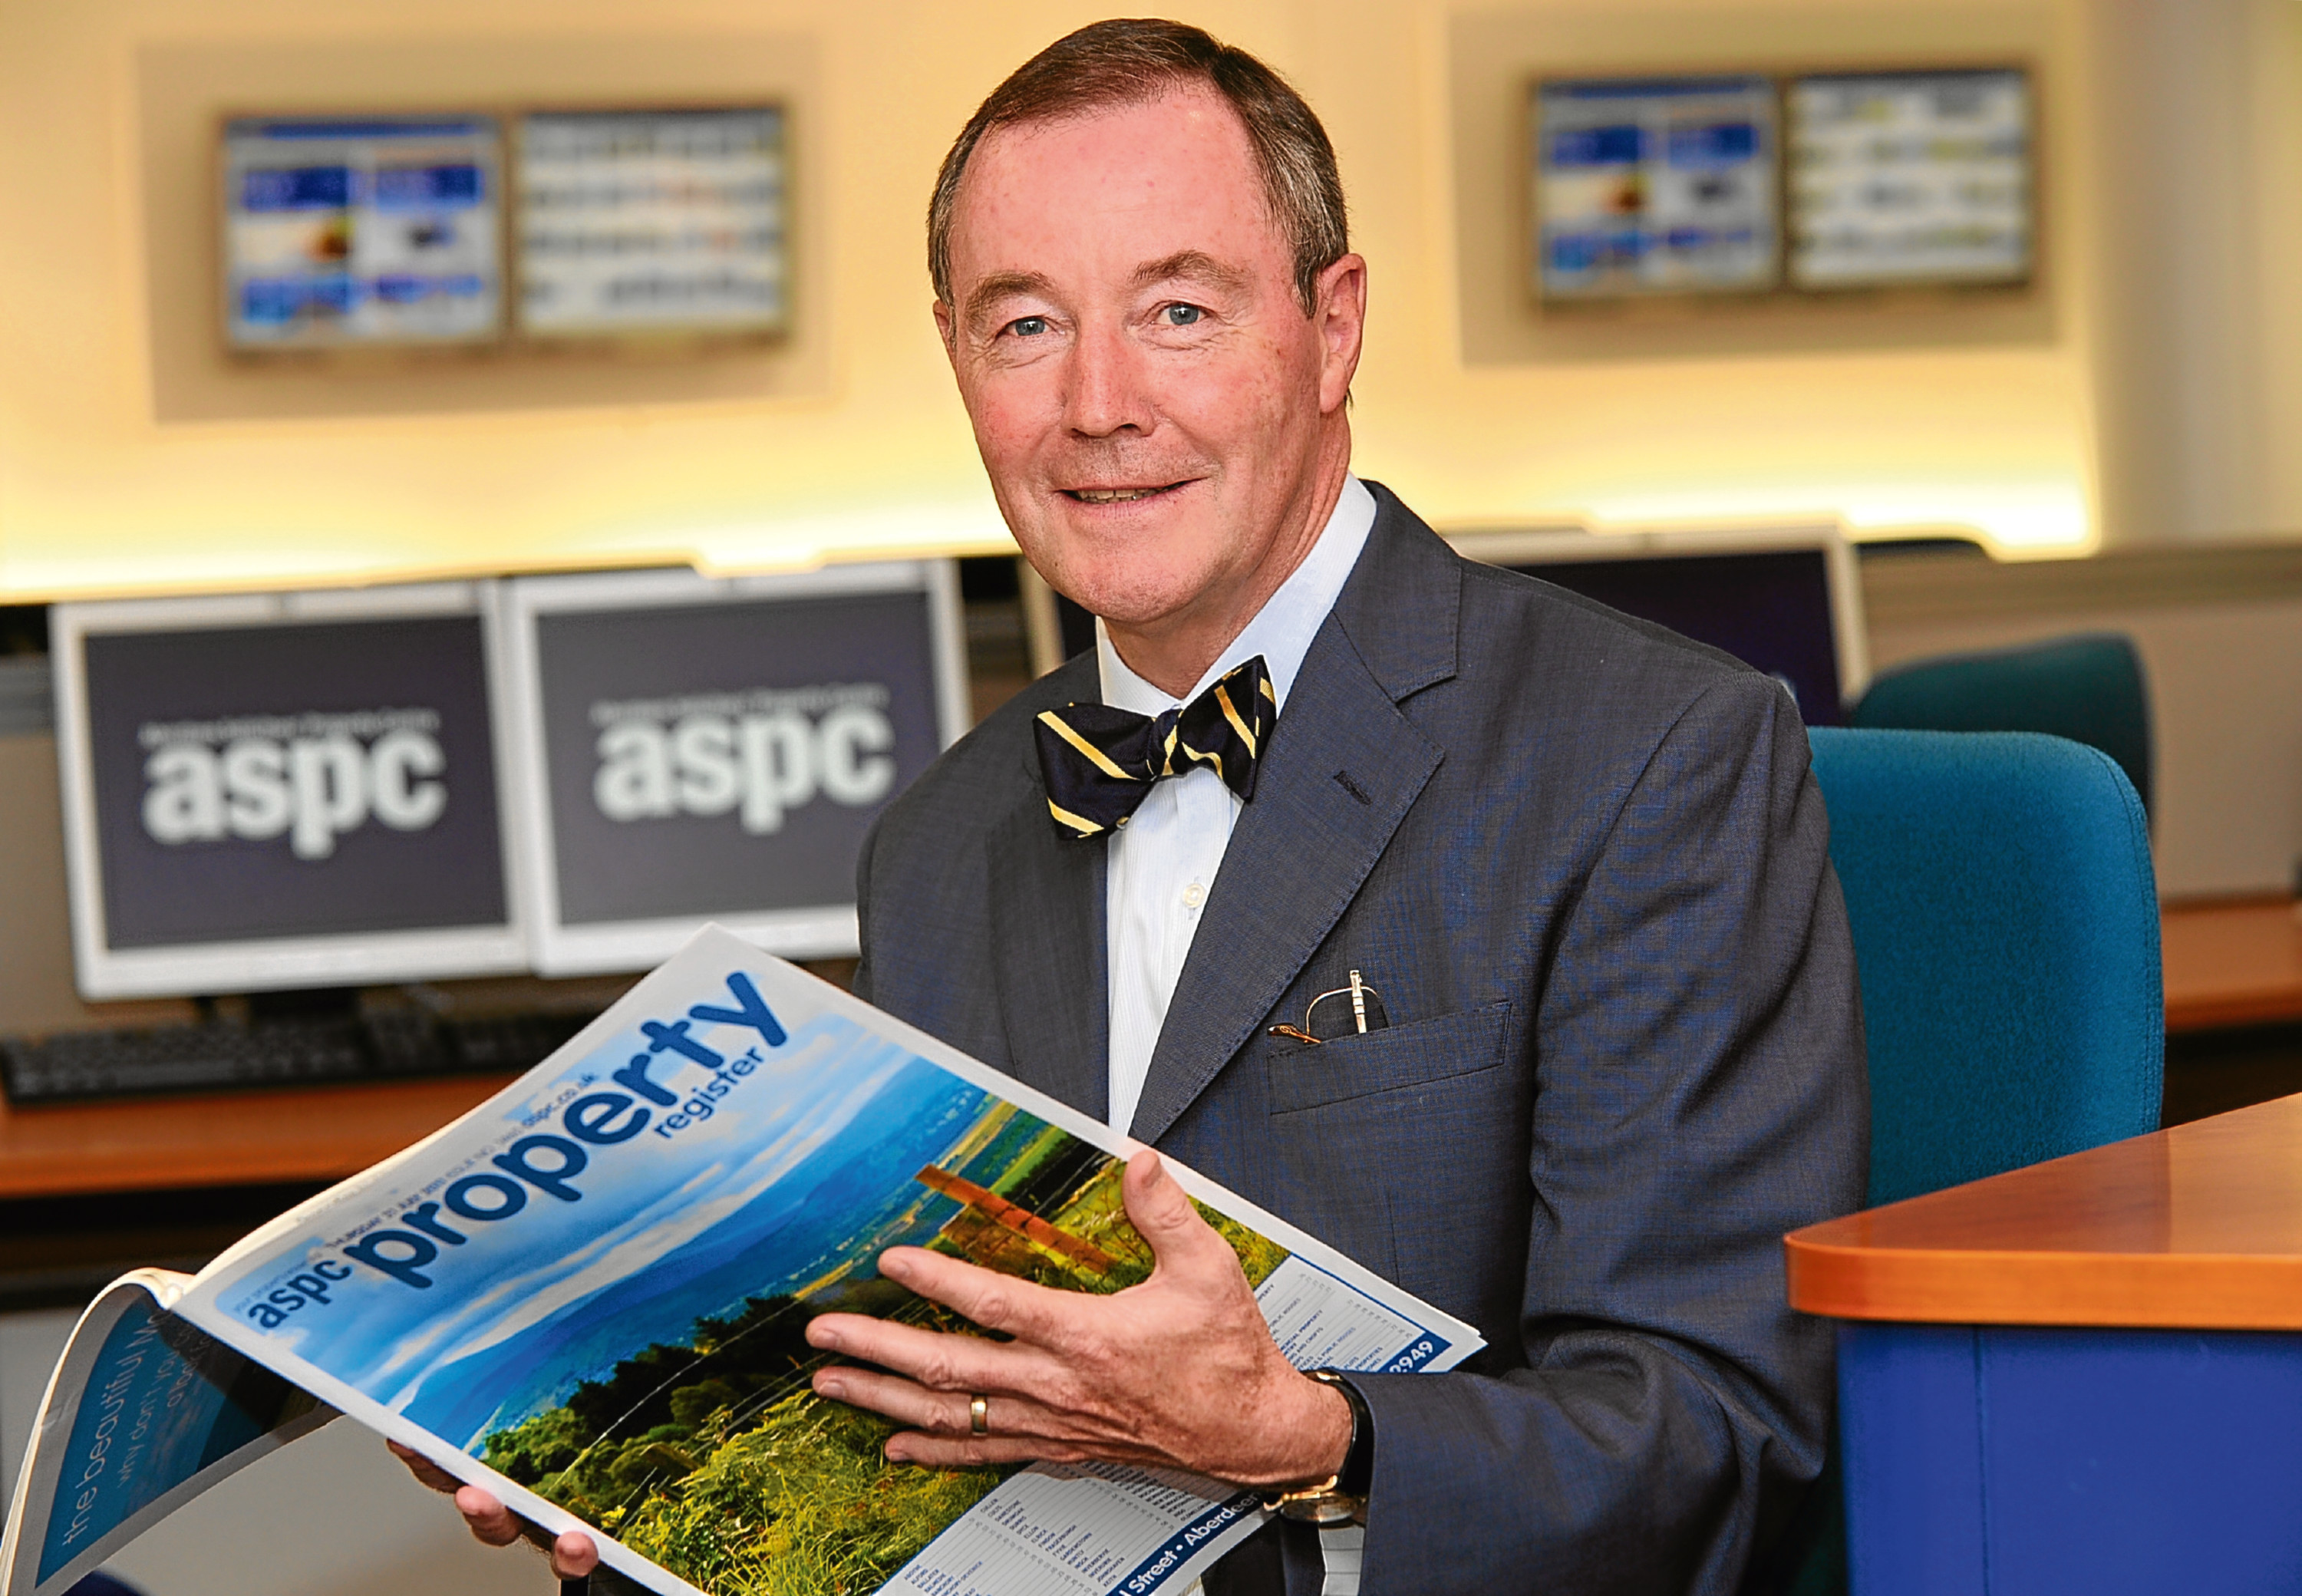 ASPC chairman John MacRae at their property centre on Chapel Street.